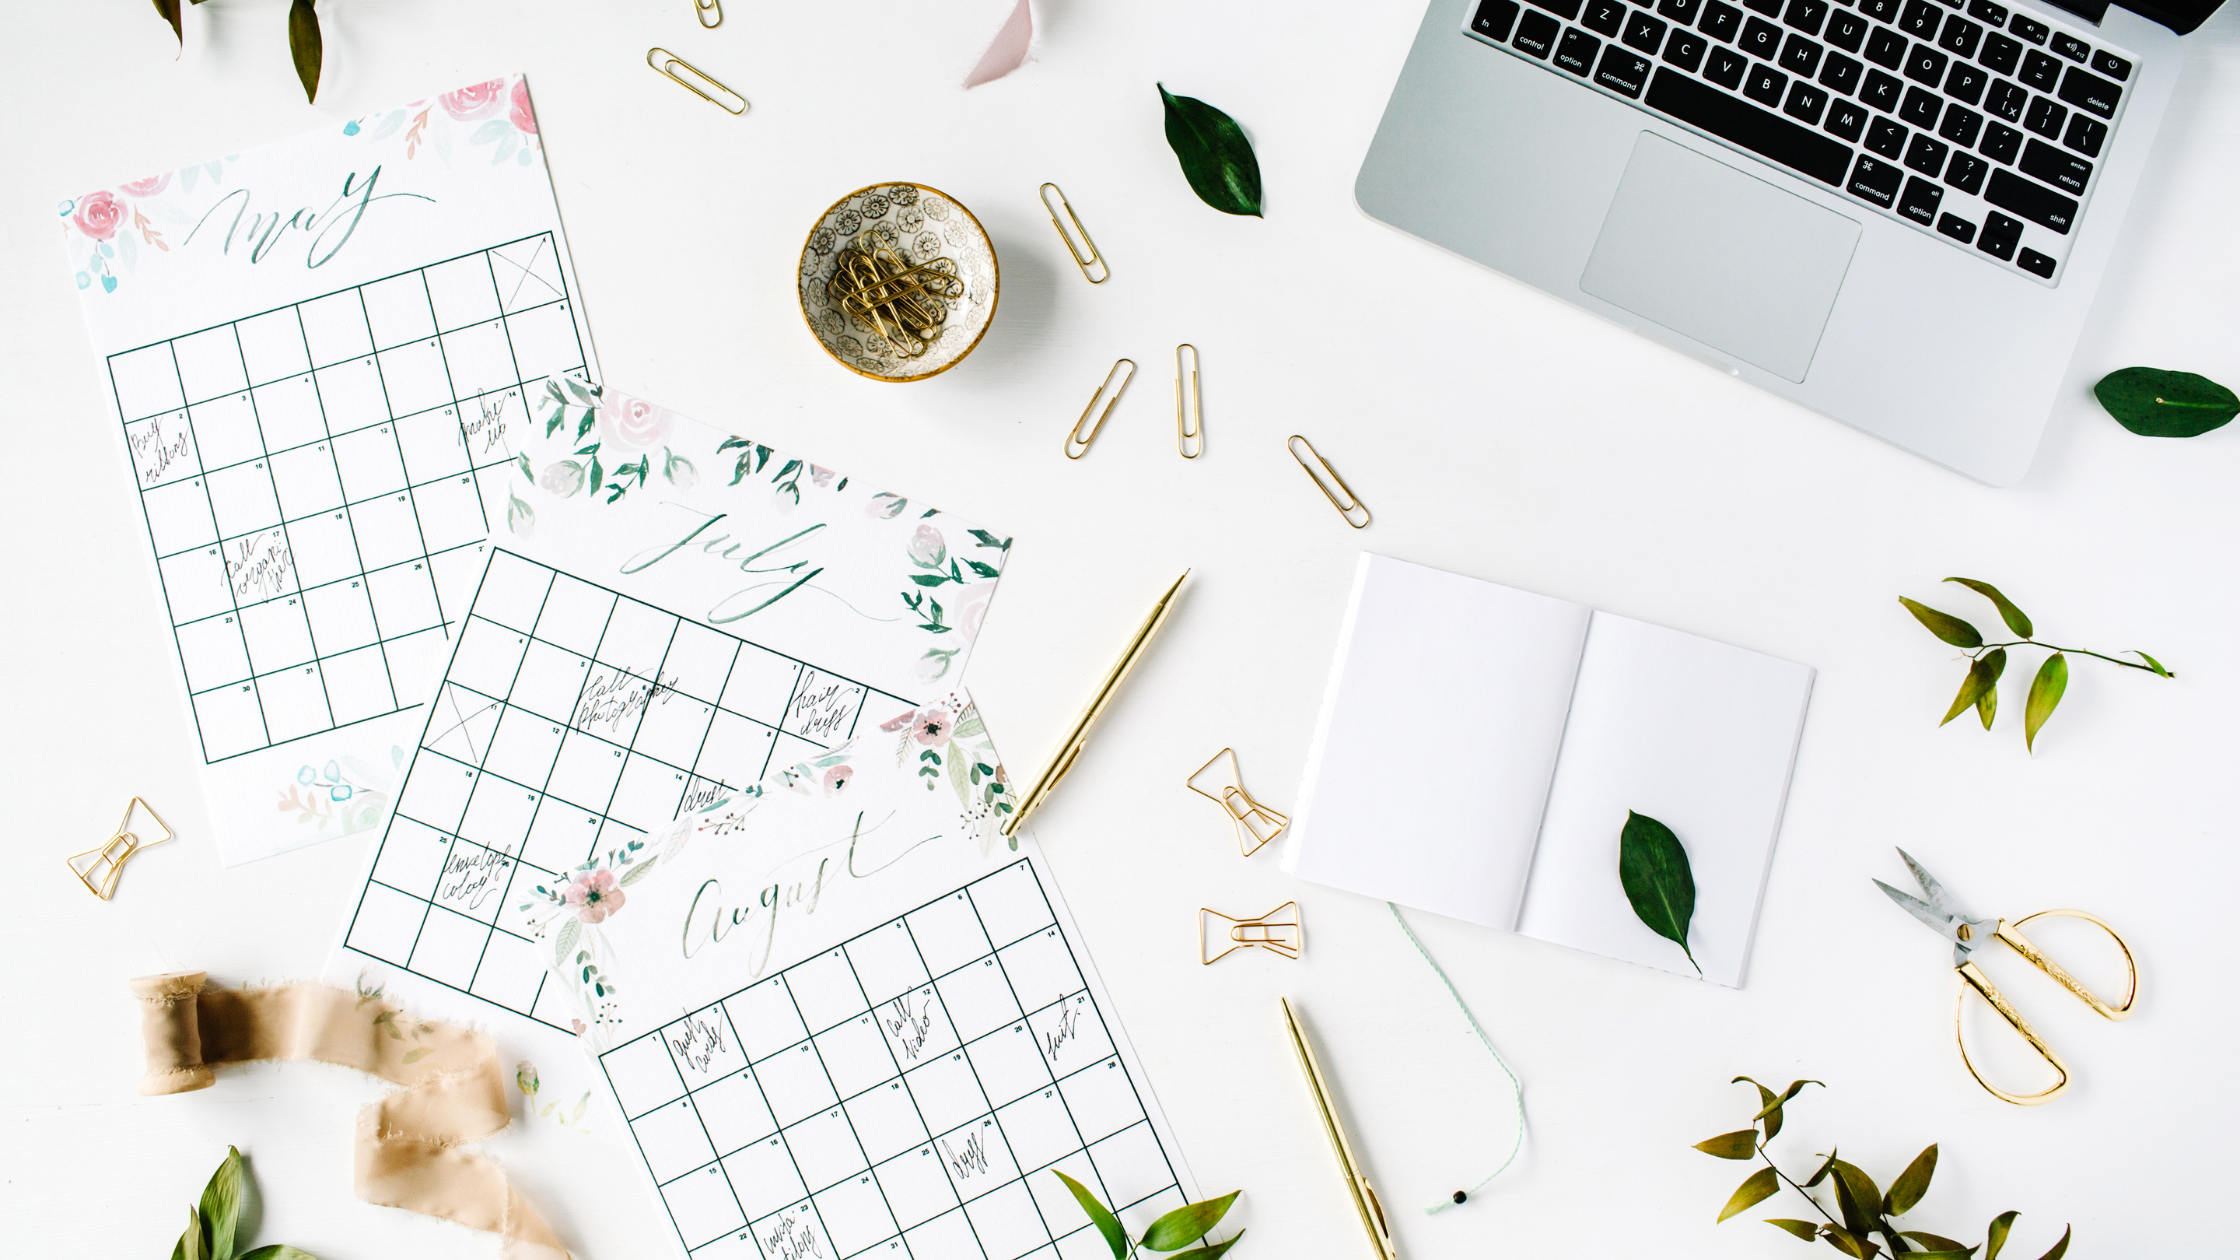 Calendars on a white desk with a laptop, paperclips & greenery. Design your Work Week with Work-Life Boundaries